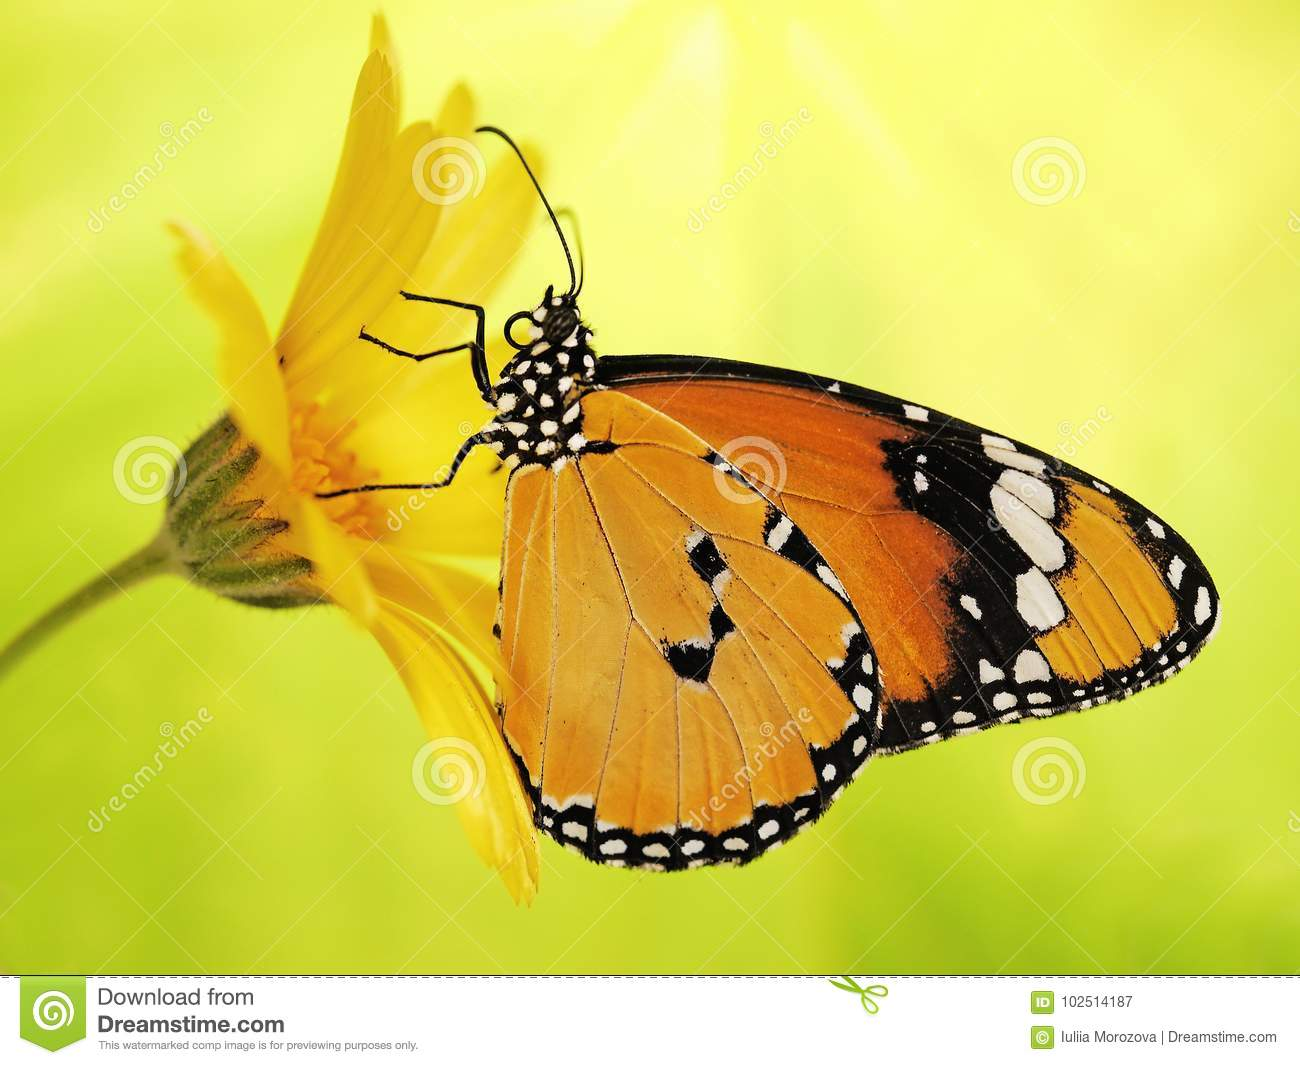 Bright orange plain tiger butterfly, Danaus chrysippus, on a marigold flower on yellow and green blured background.